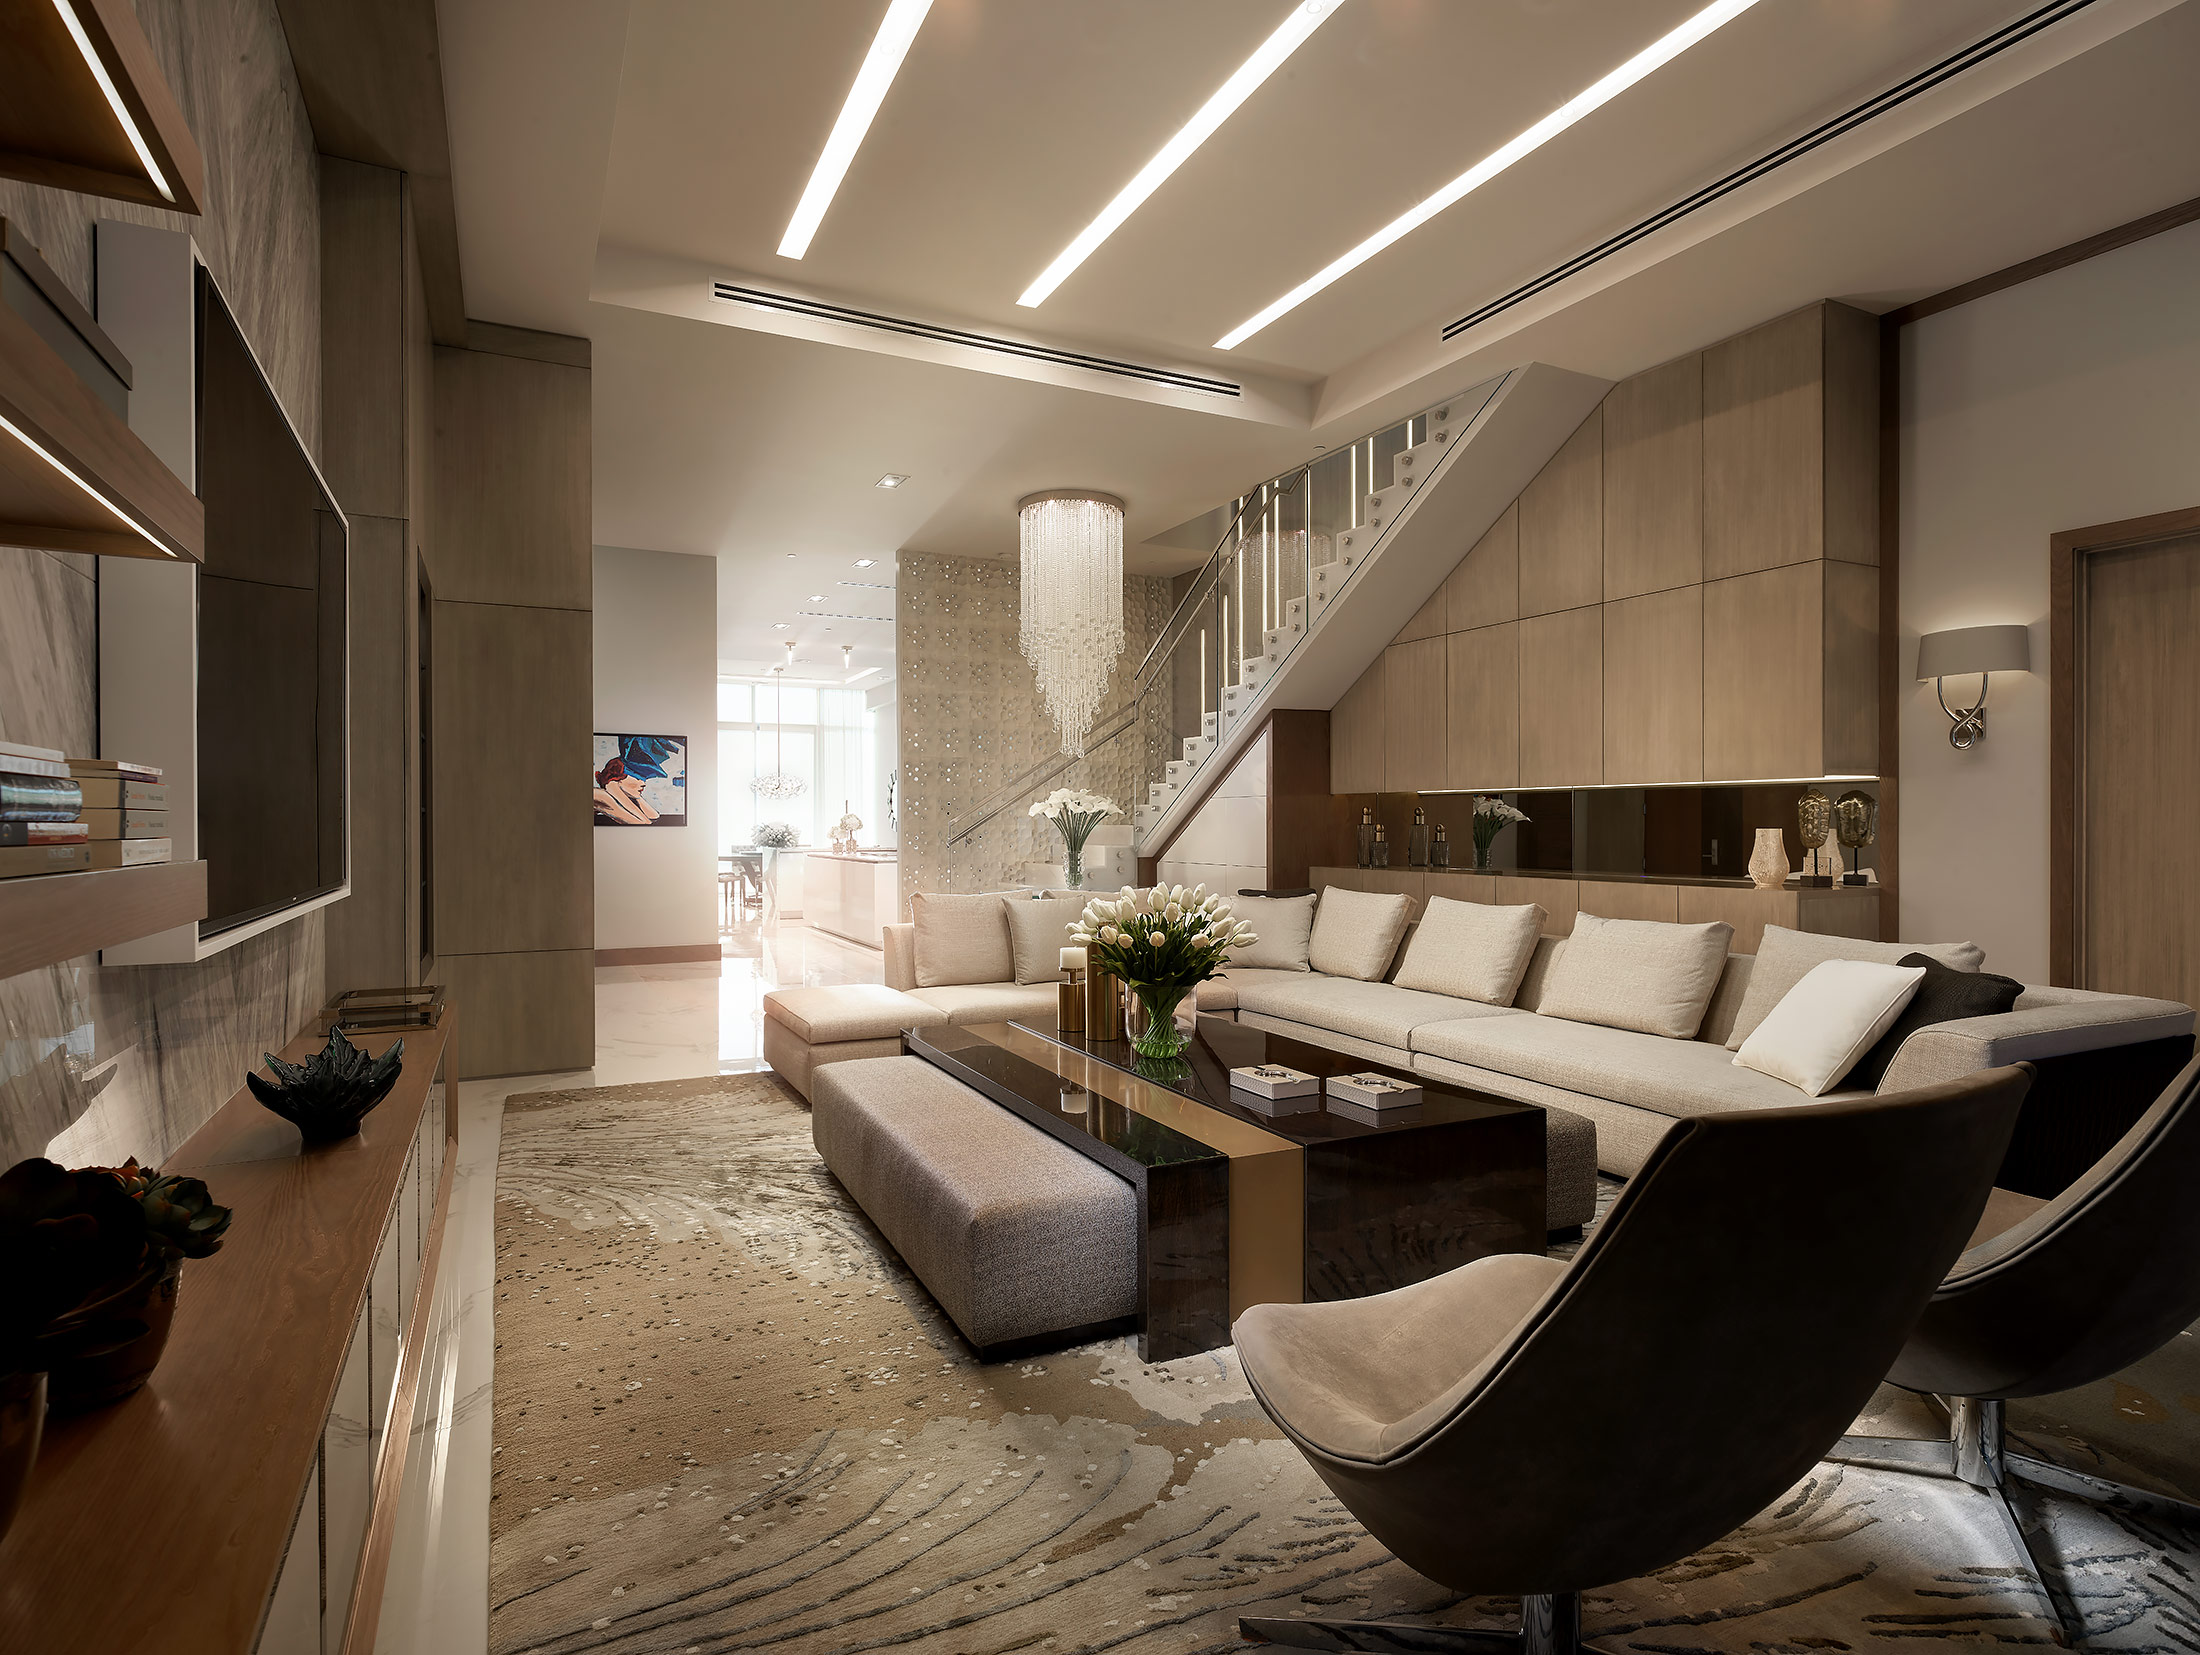 Interiors-by-Steven-G-Family-Sunburst